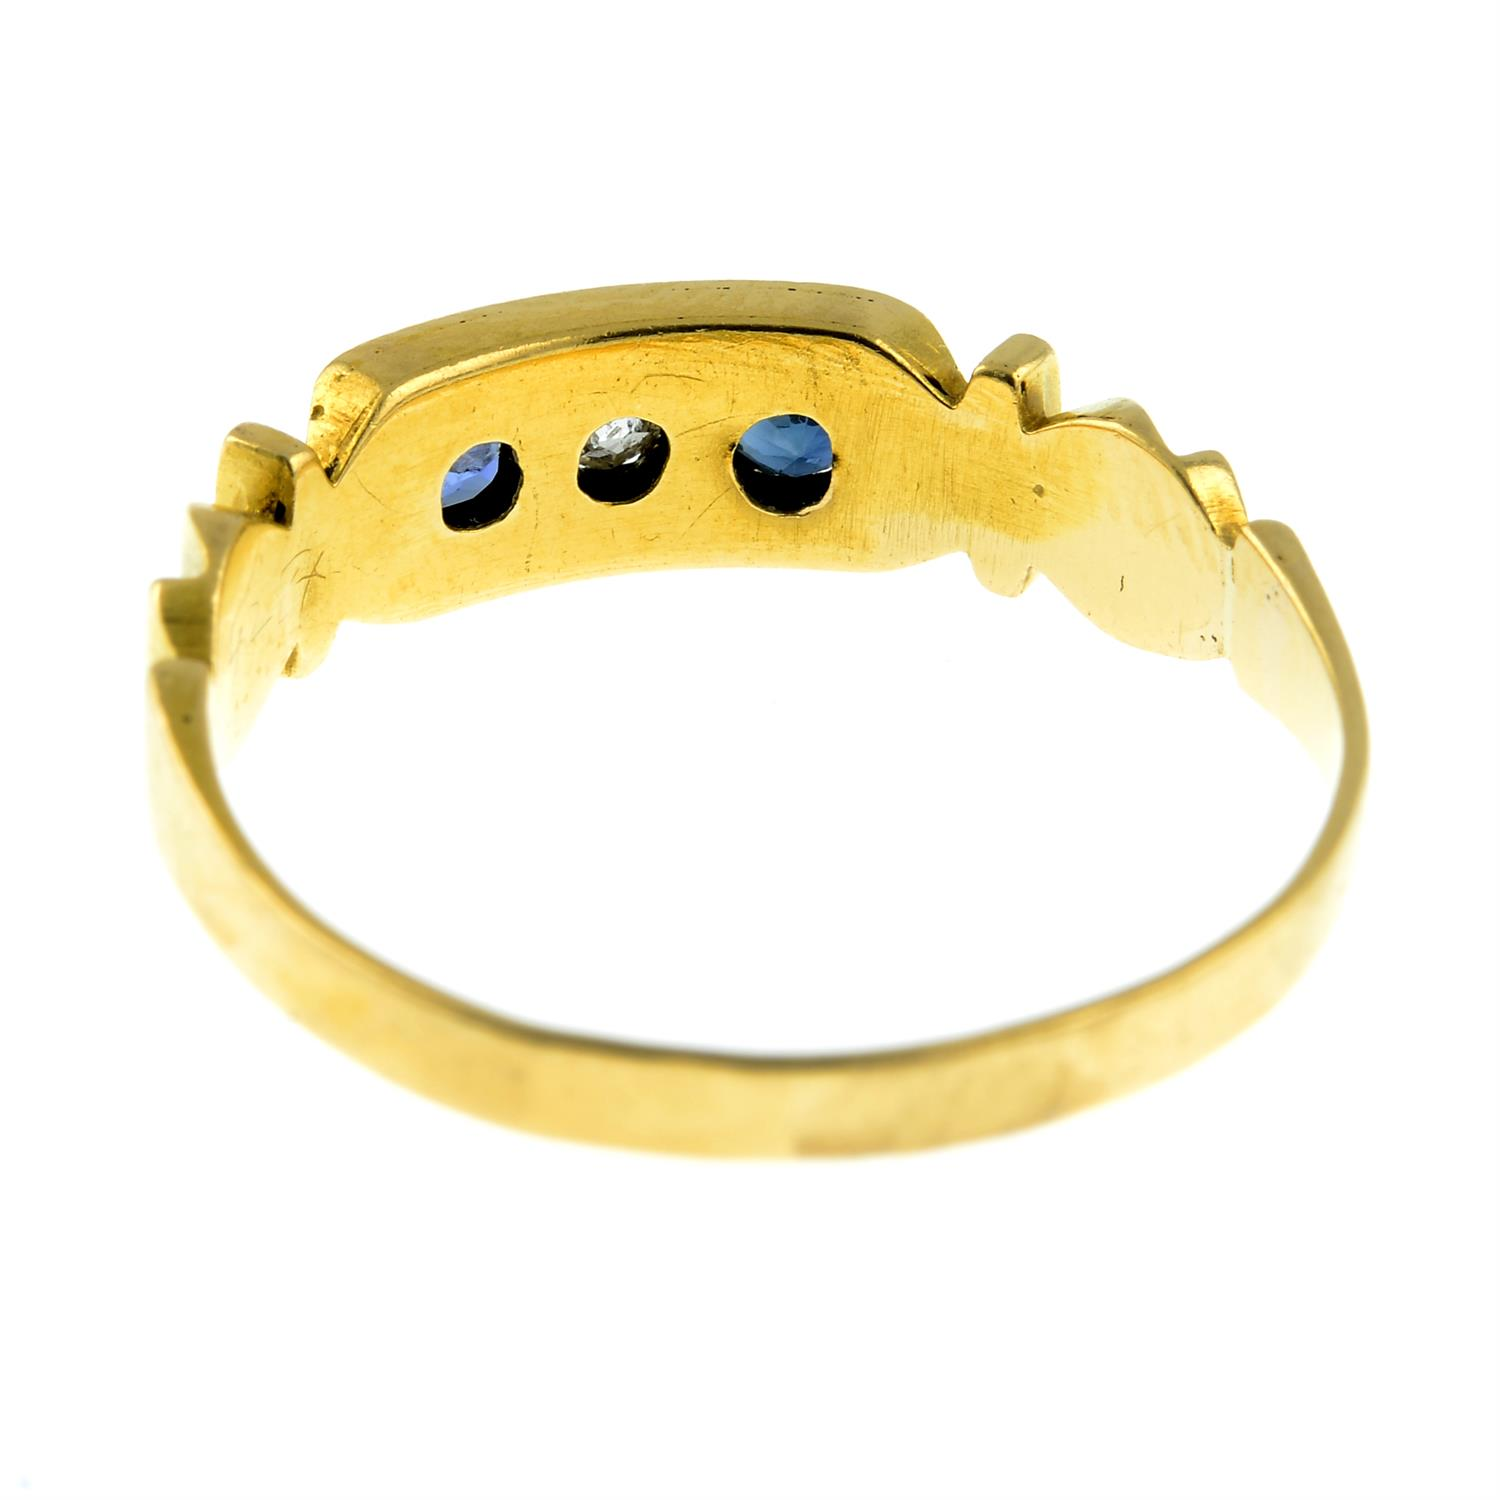 A late Victorian 18ct gold sapphire and diamond three-stone ring. - Image 3 of 3